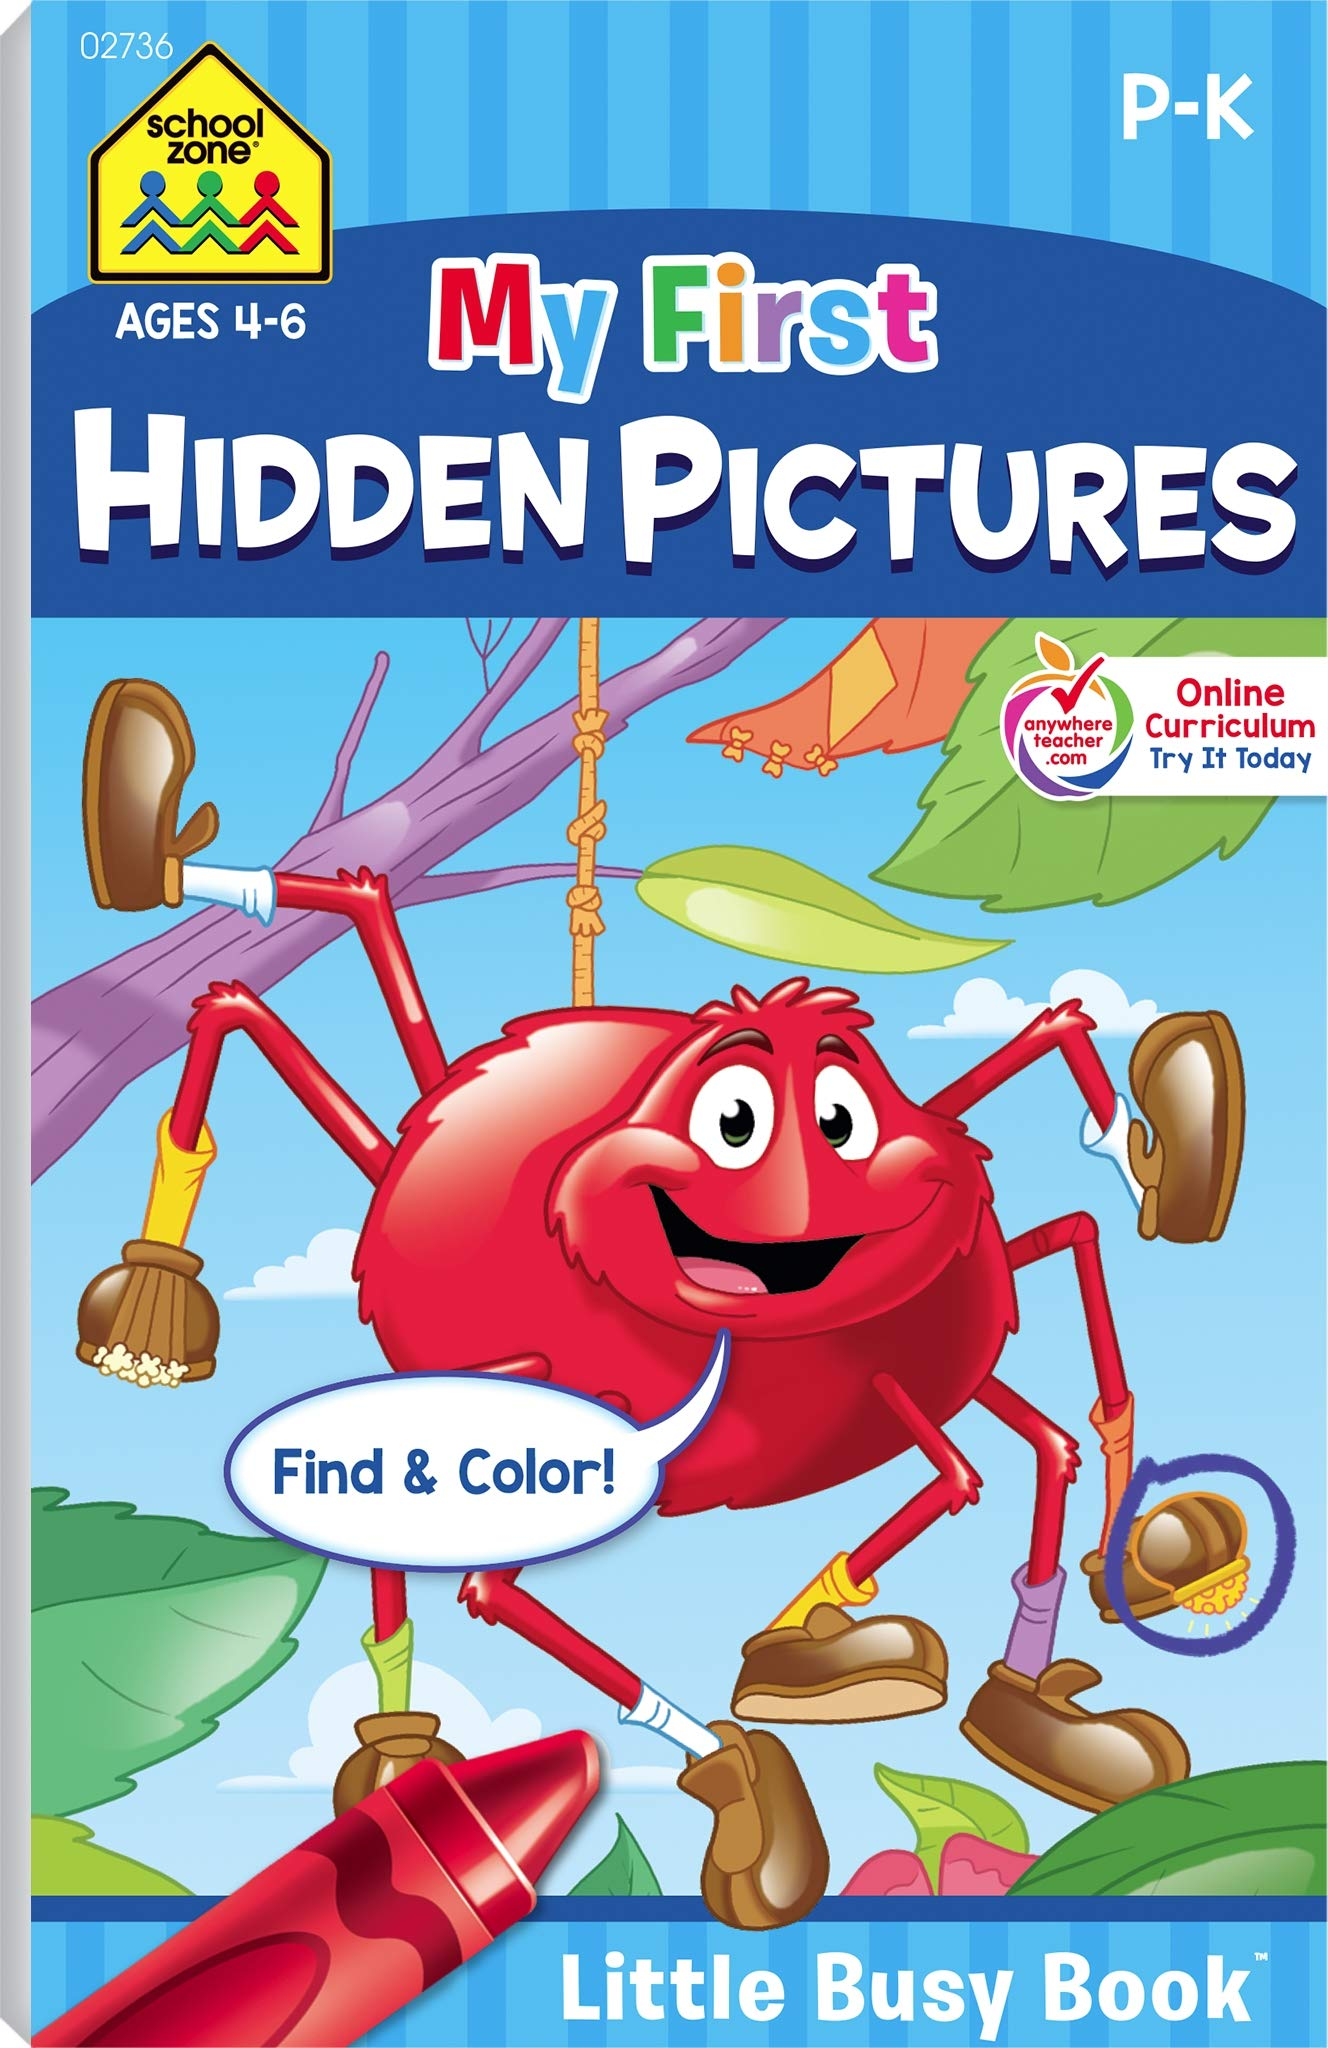 School Zone My First Hidden Pictures Workbook Ages 4 To 6 Preschool To Kindergarten Activity Pad Search Find Picture Puzzles Coloring And More School Zone Little Busy Book Series